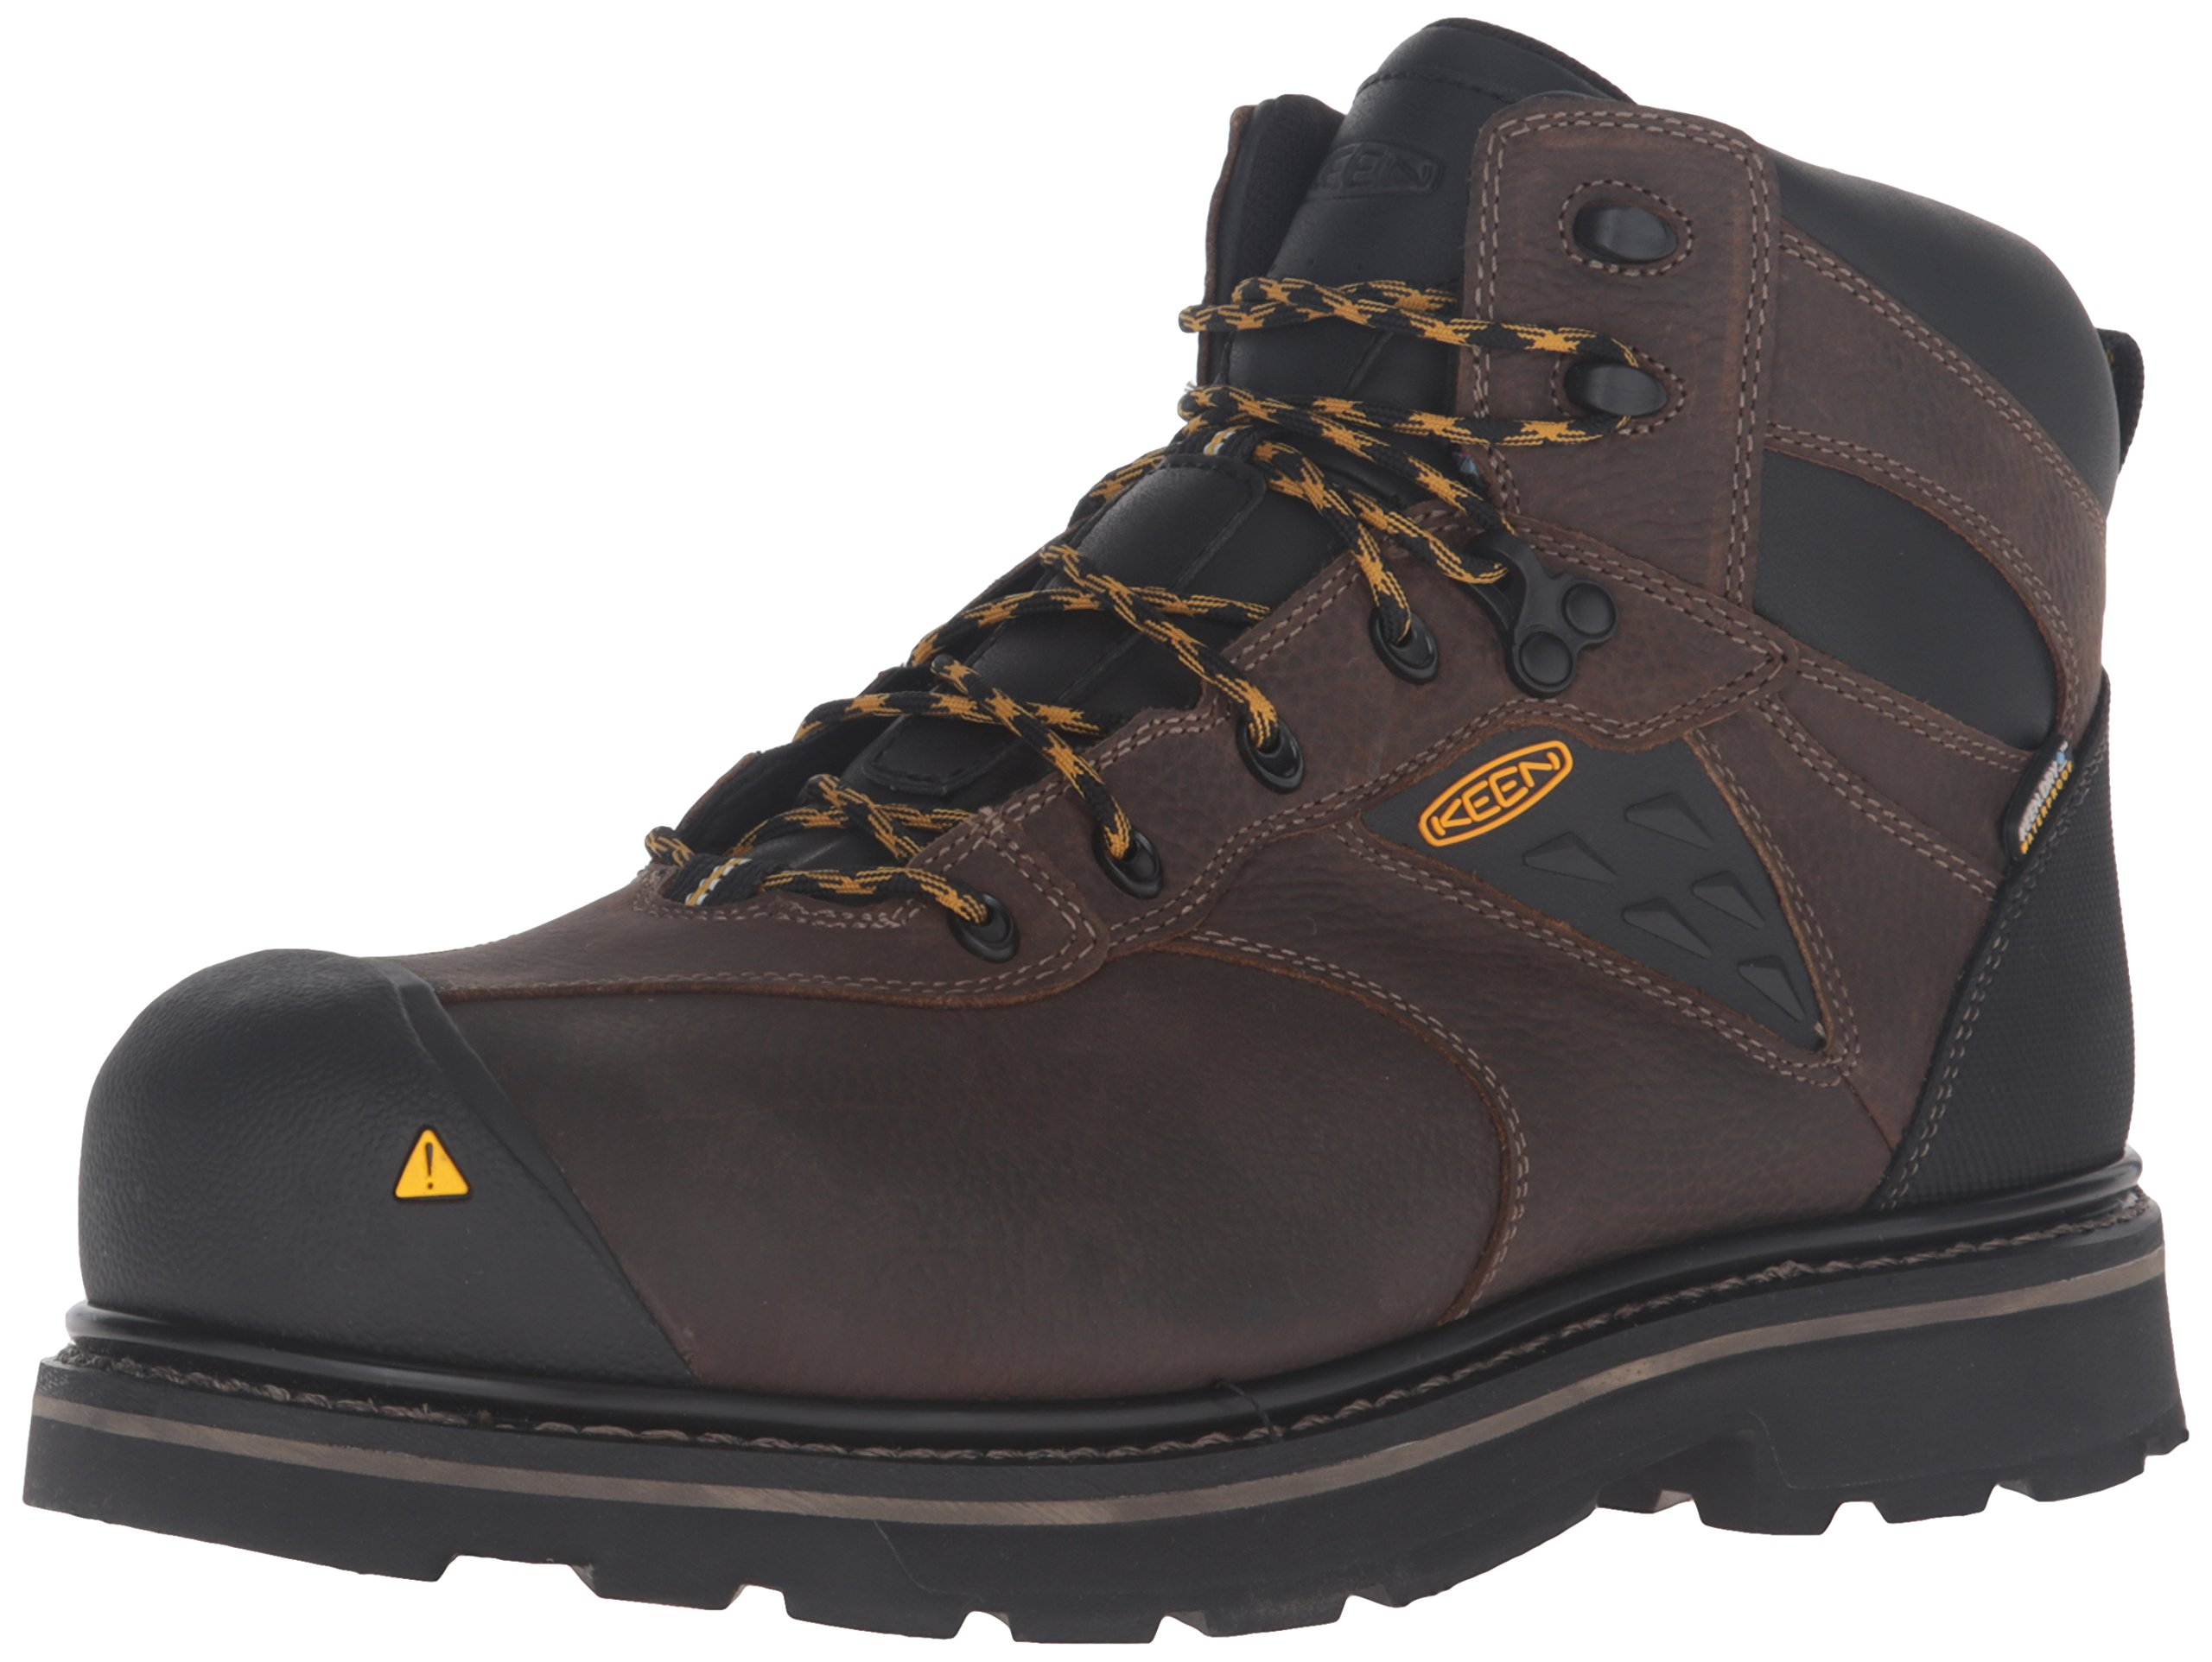 KEEN Utility Men's Tacoma Waterproof Work Boot, Cascade Brown/Tawny Olive, 14 M US